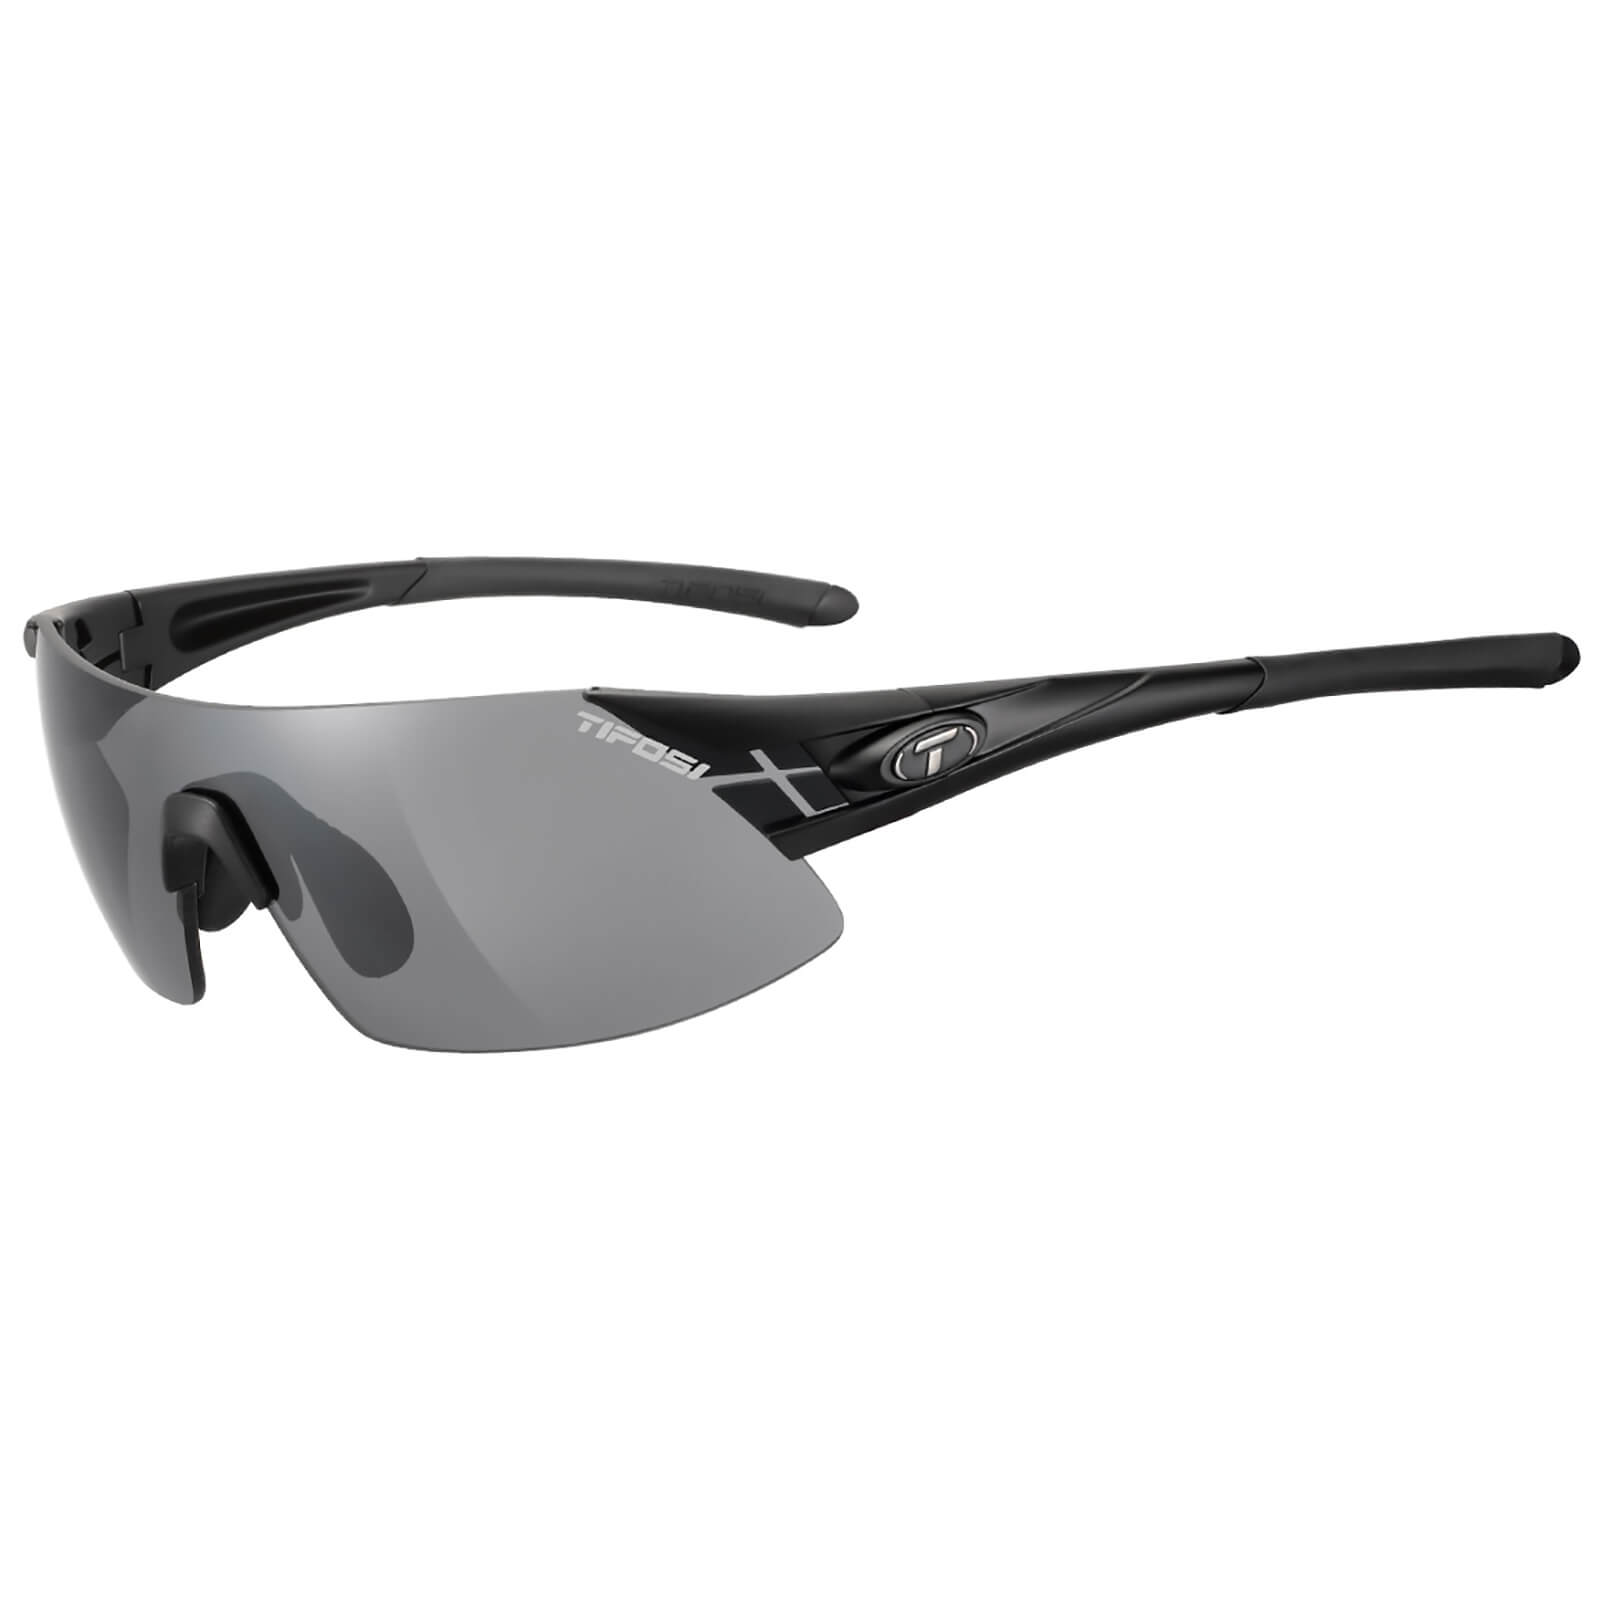 Tifosi Podium Interchangeable Sunglasses - Matte Black